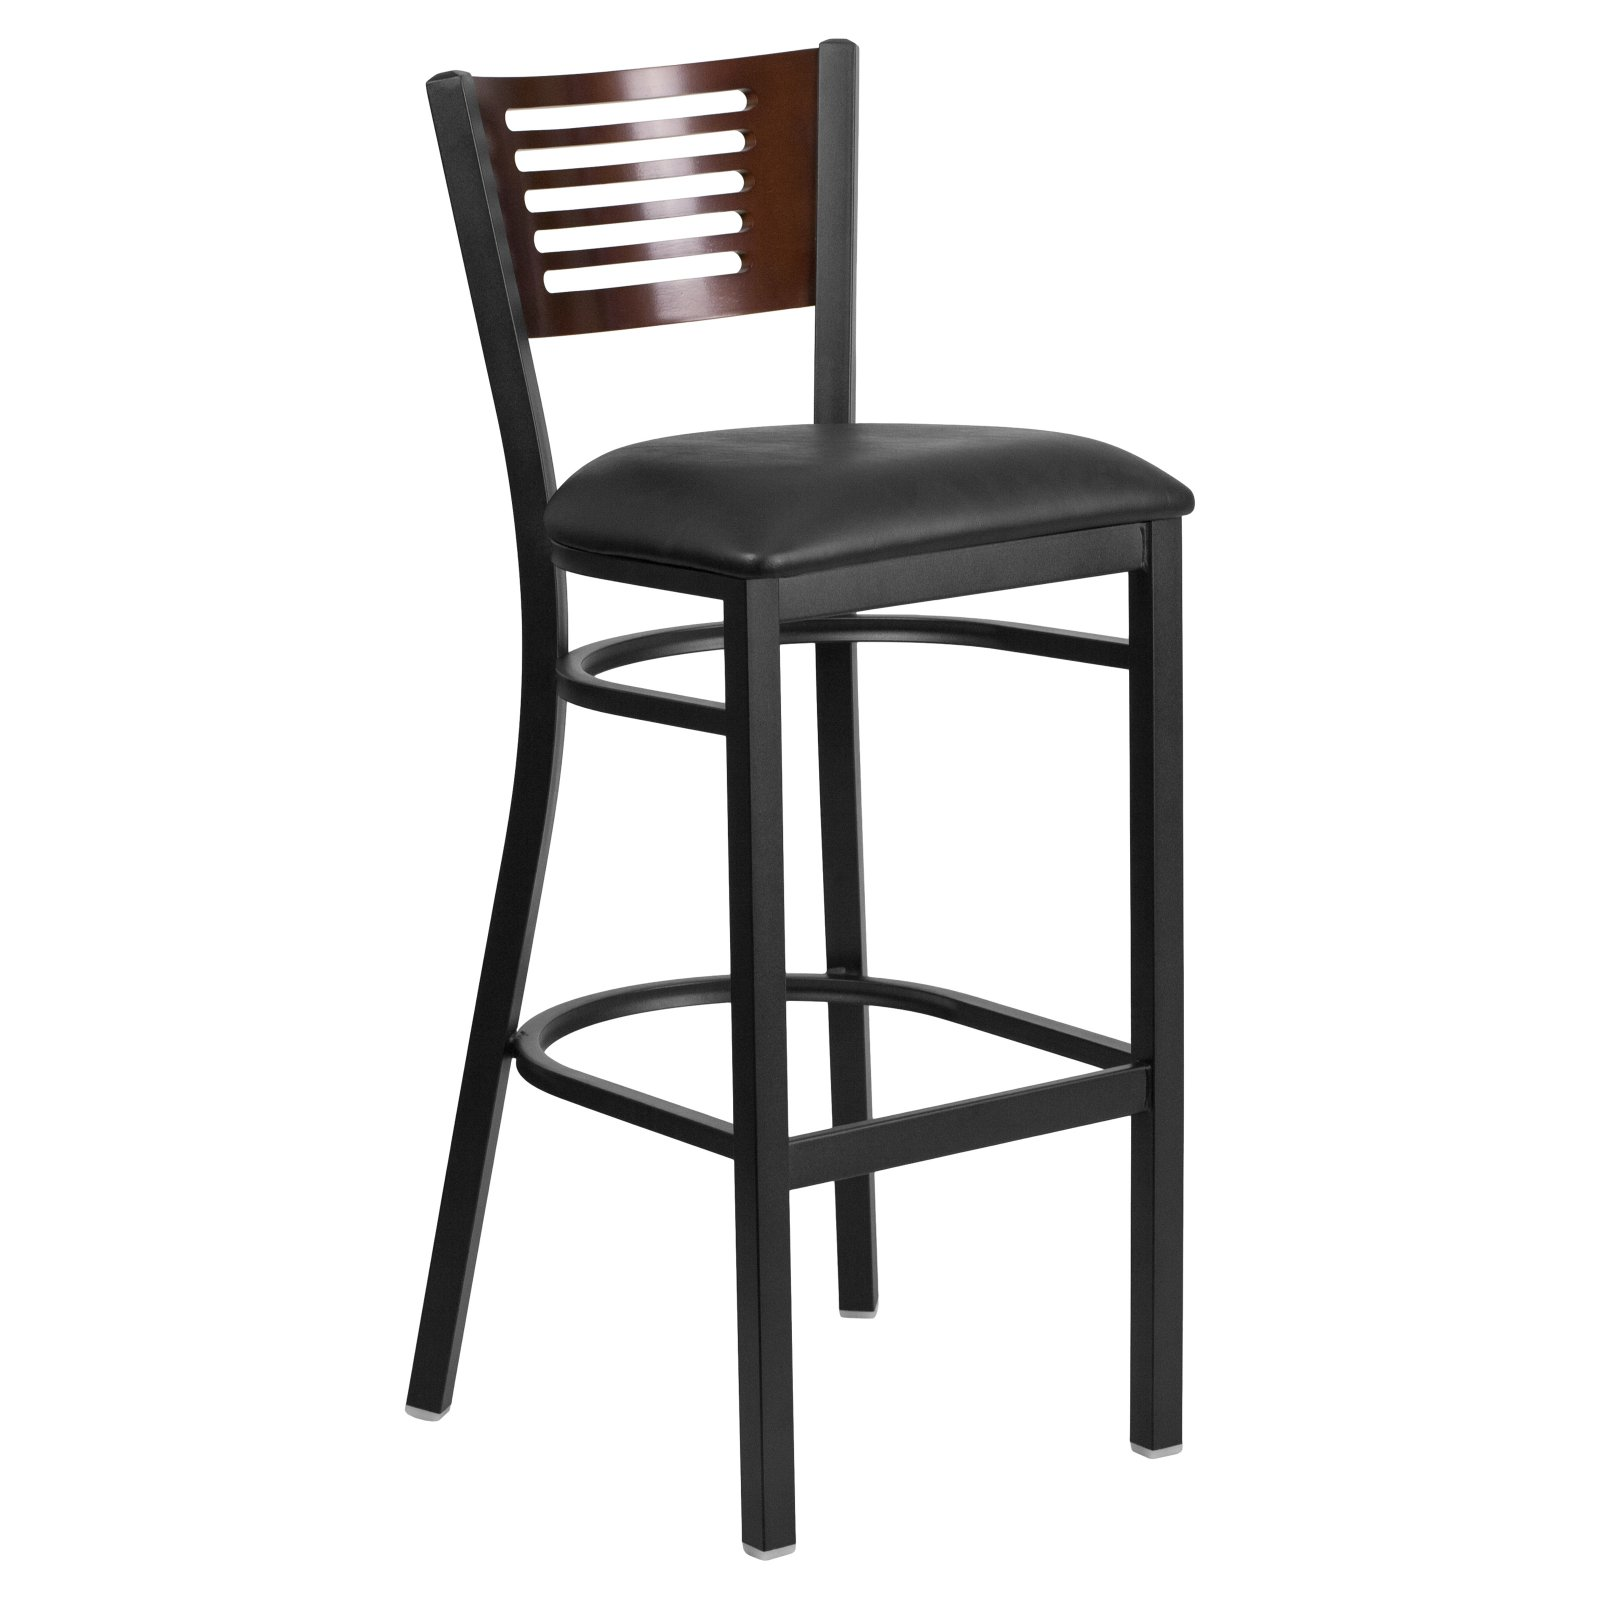 Flash Furniture HERCULES Series Black Decorative Slat Back Metal Restaurant Barstool, Wood Back, Vinyl Seat, Multiple Colors